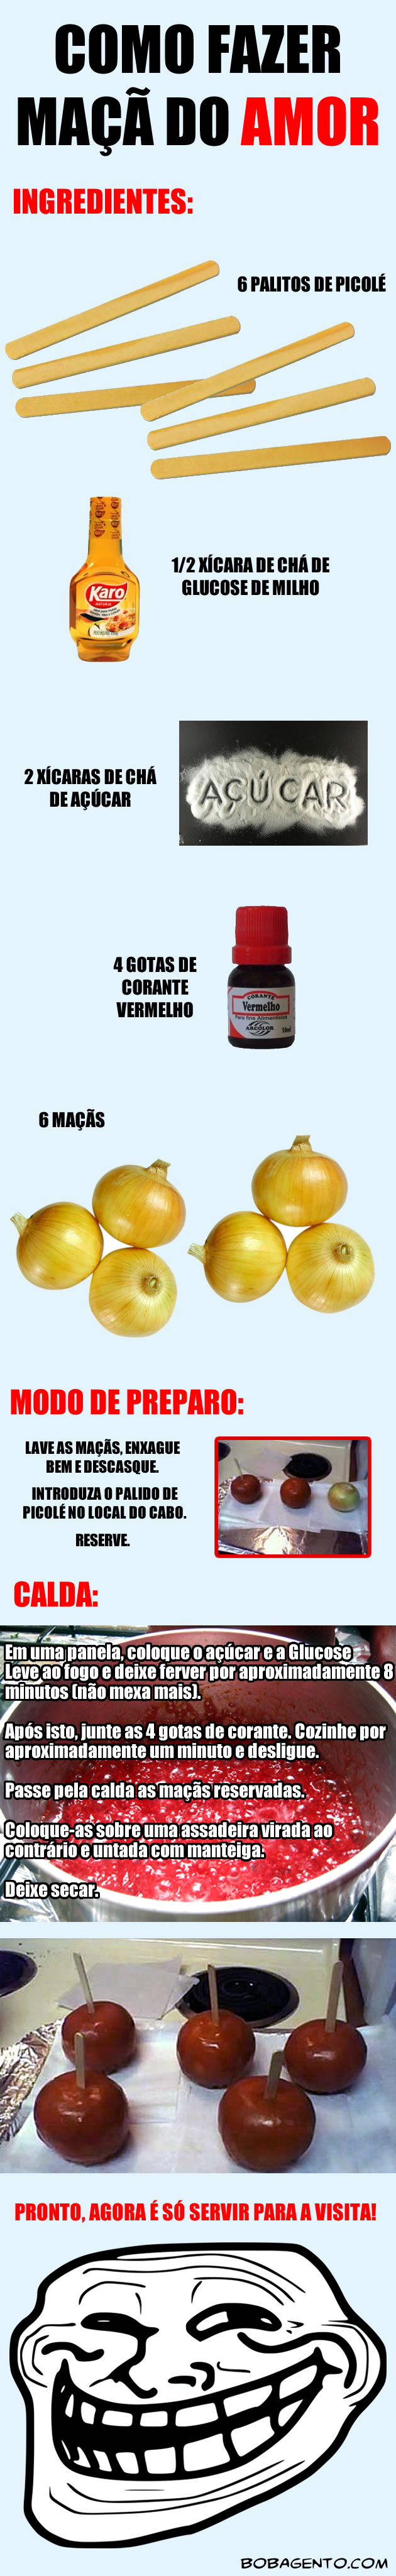 maca do amor Receita de maçã do amor